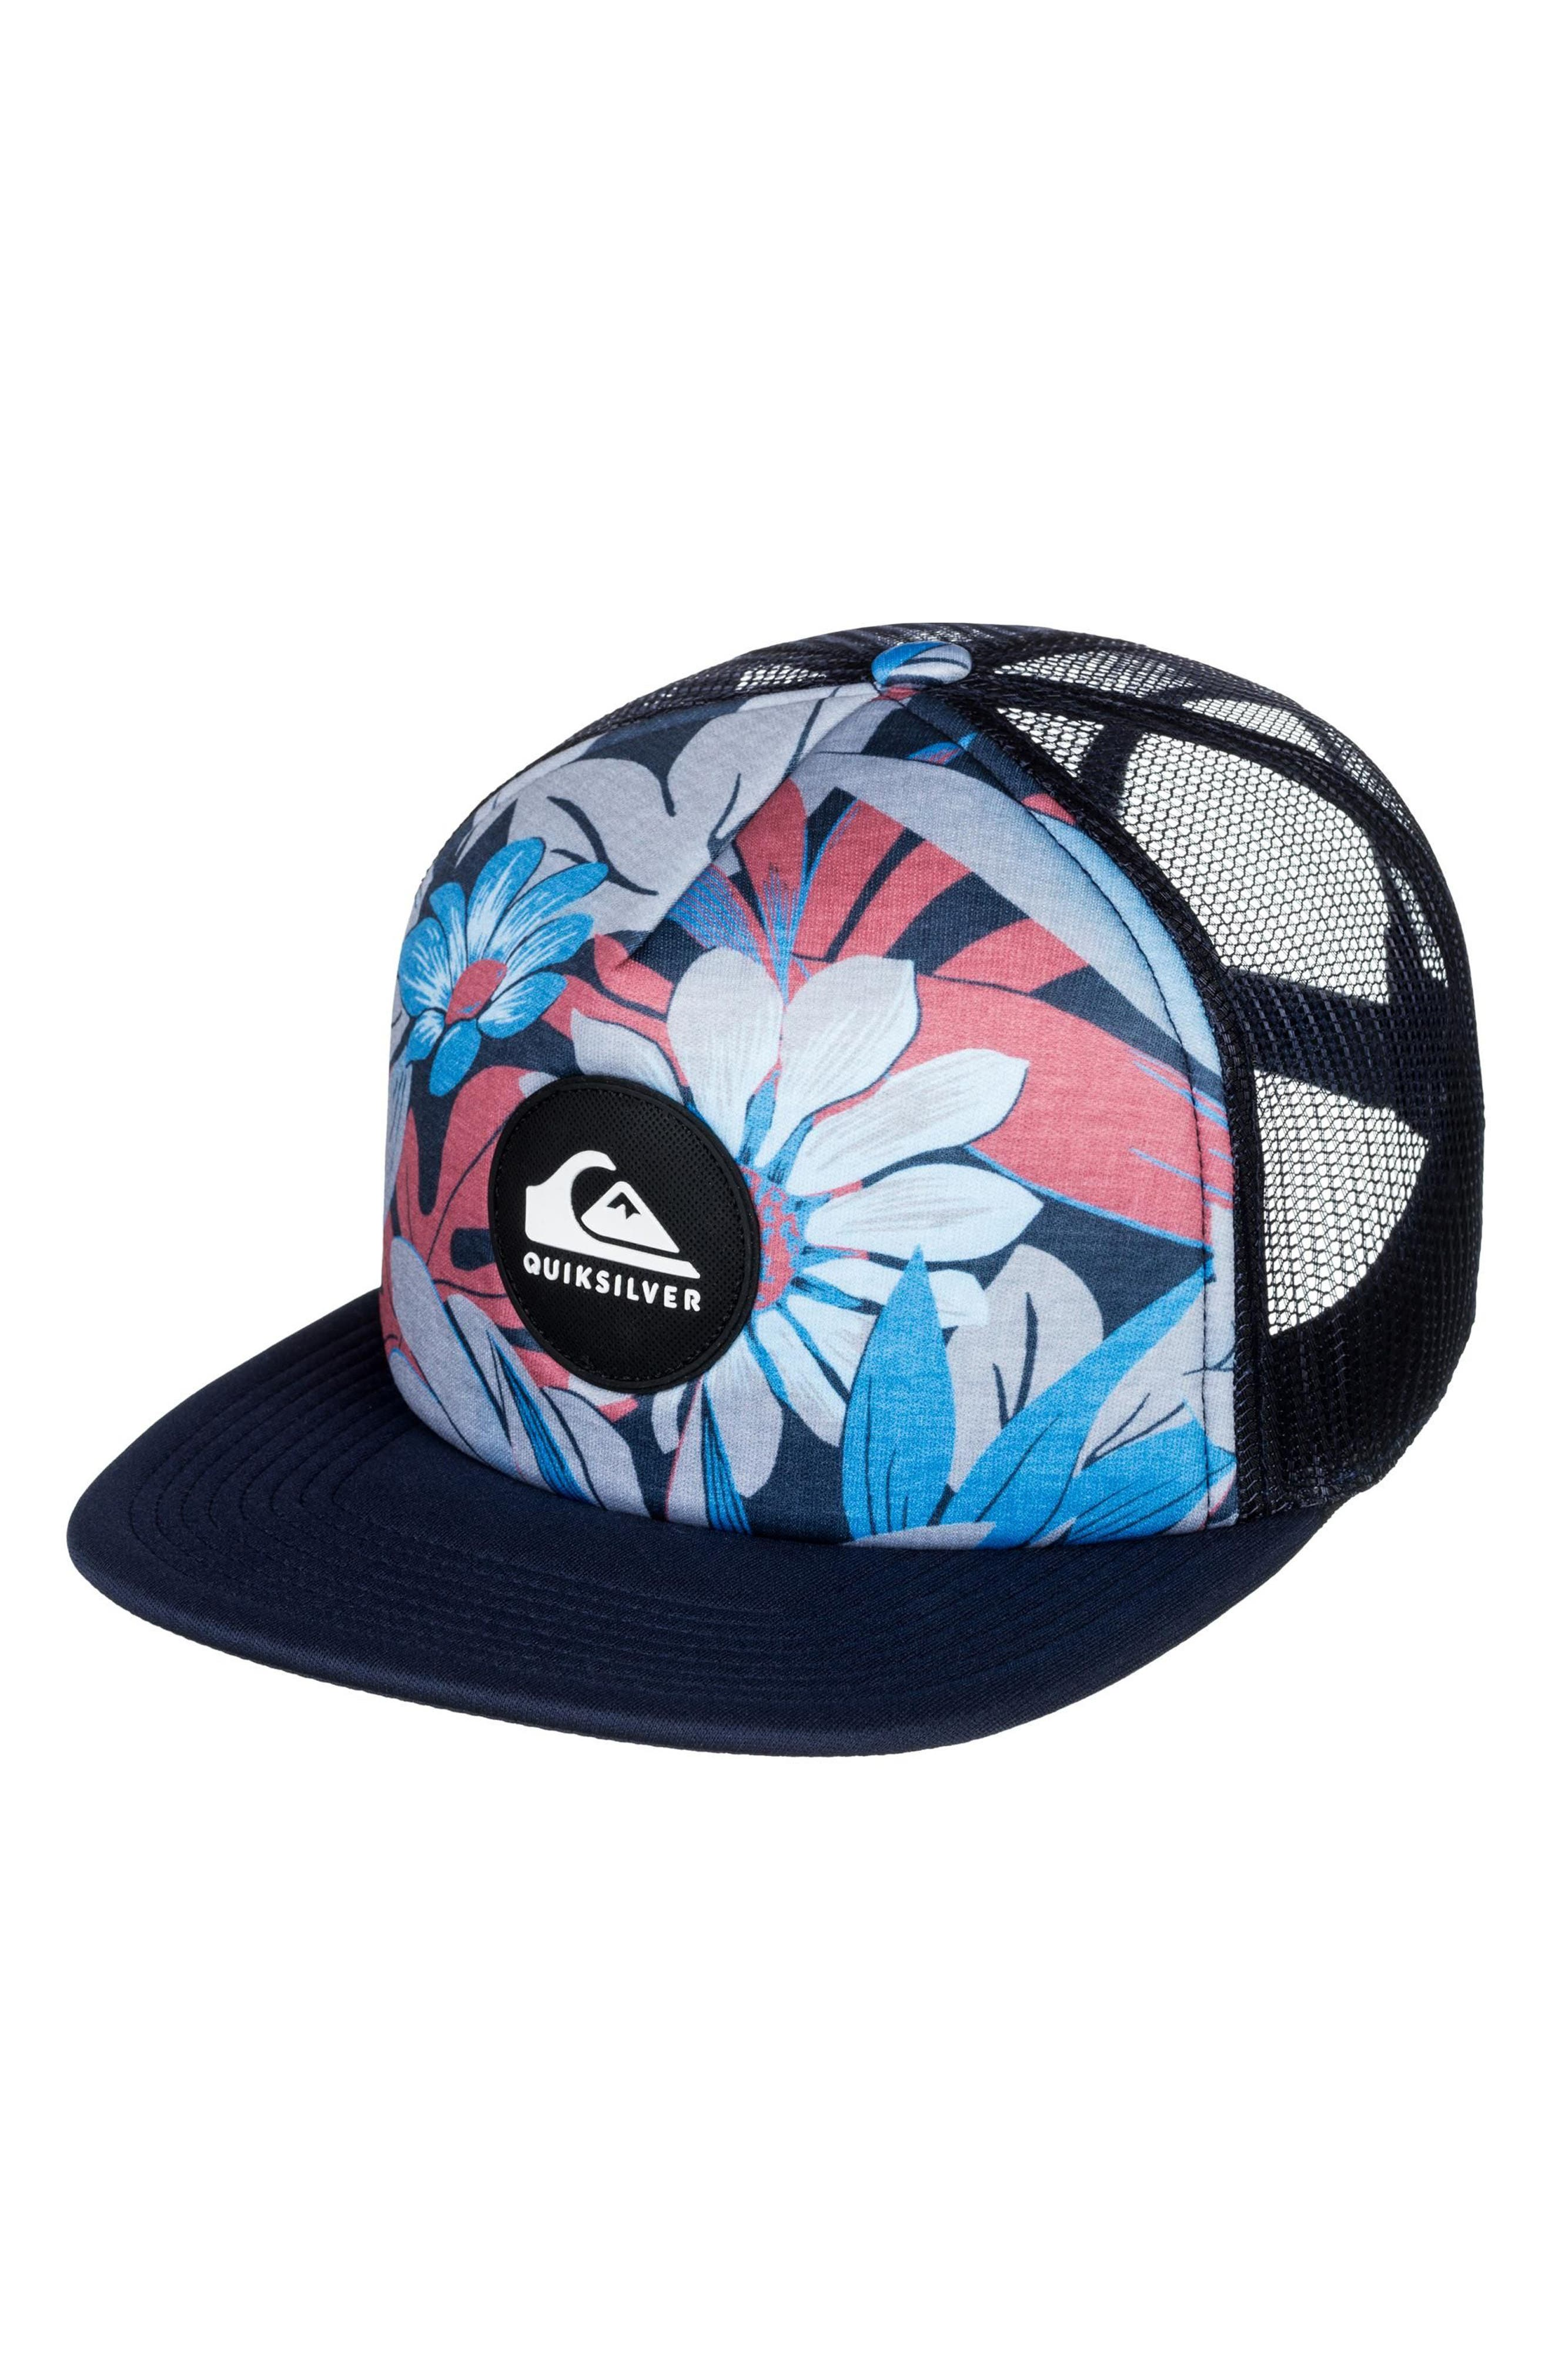 Quicksilver Faded Out Trucker Hat,                         Main,                         color, Navy Blazer